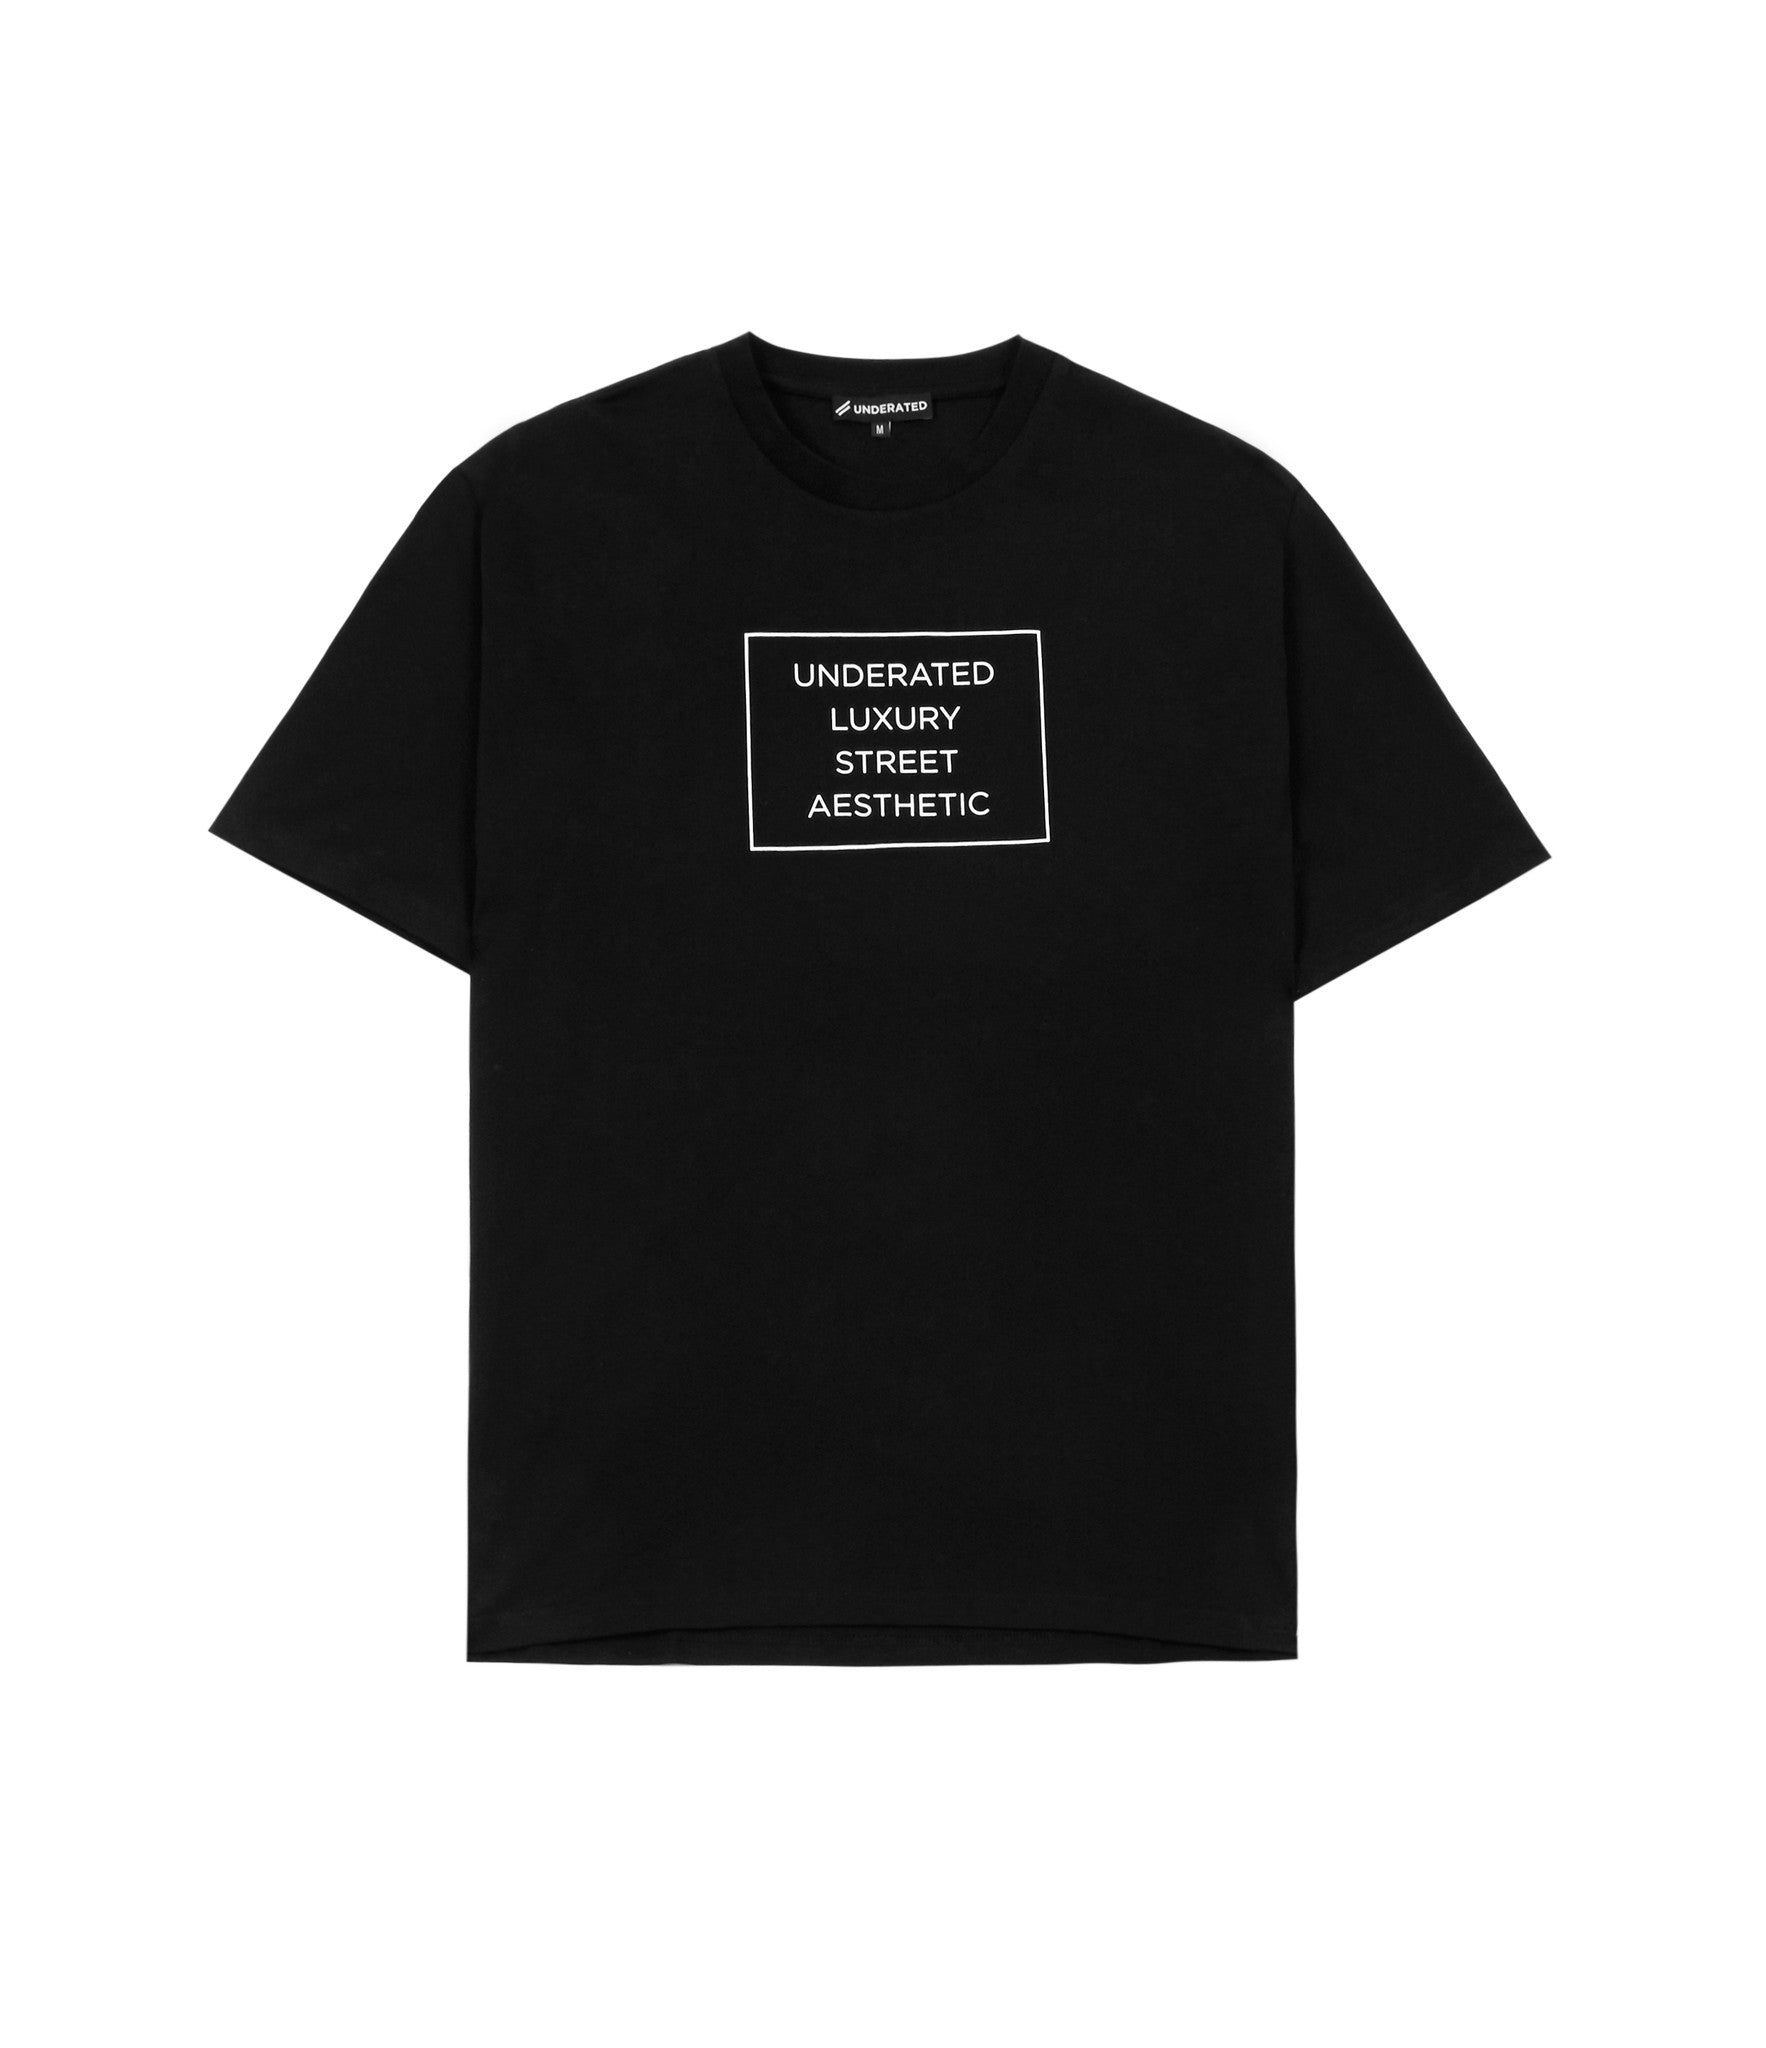 TS319 Box Logo Printed Tee - Black - underated london - underatedco - 1